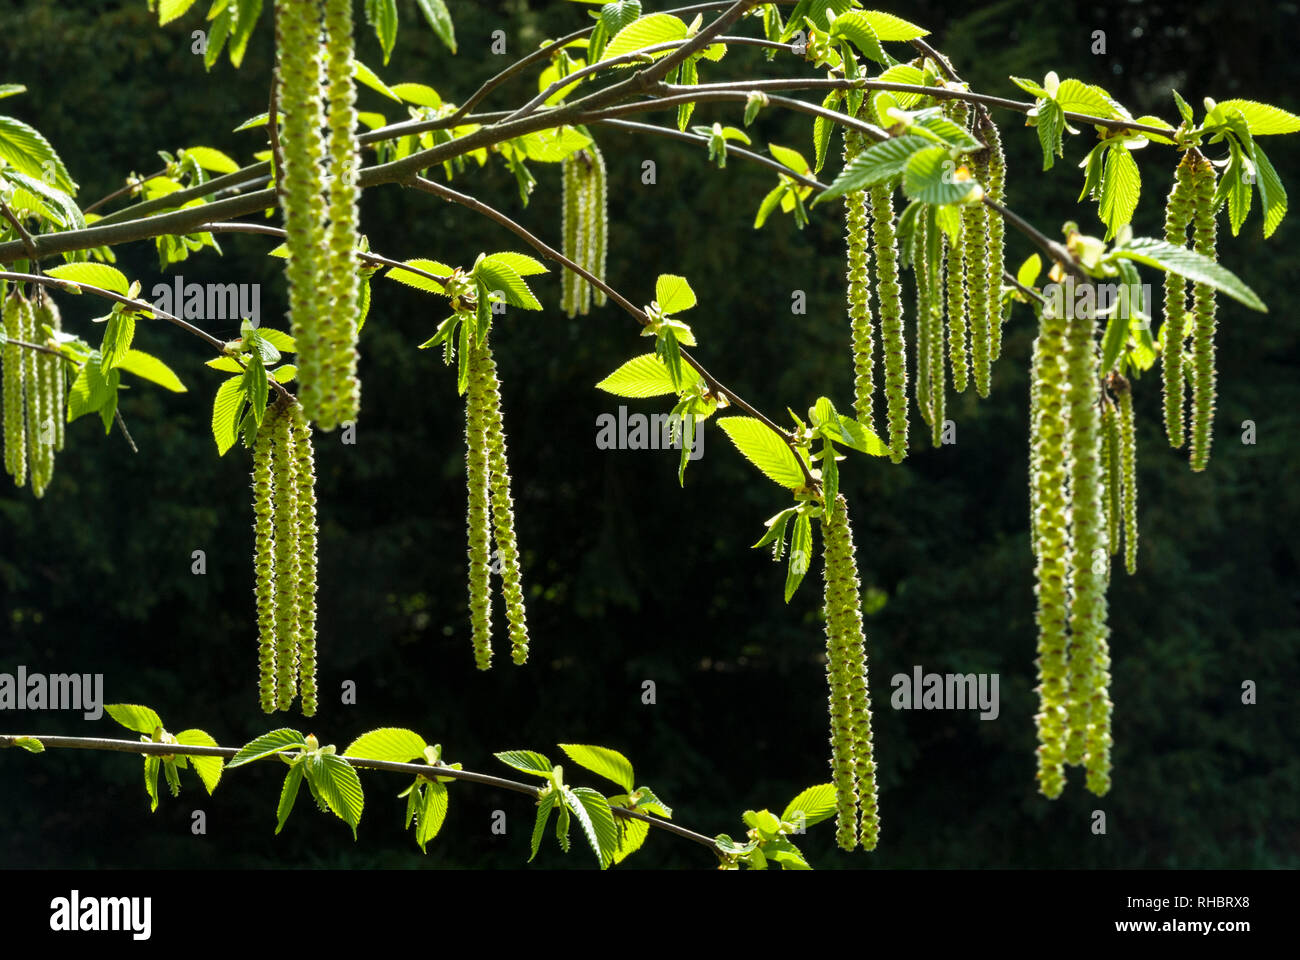 Long catkins and leaf buds of the Hazel in sunshine against a dark background on a bright spring day. - Stock Image